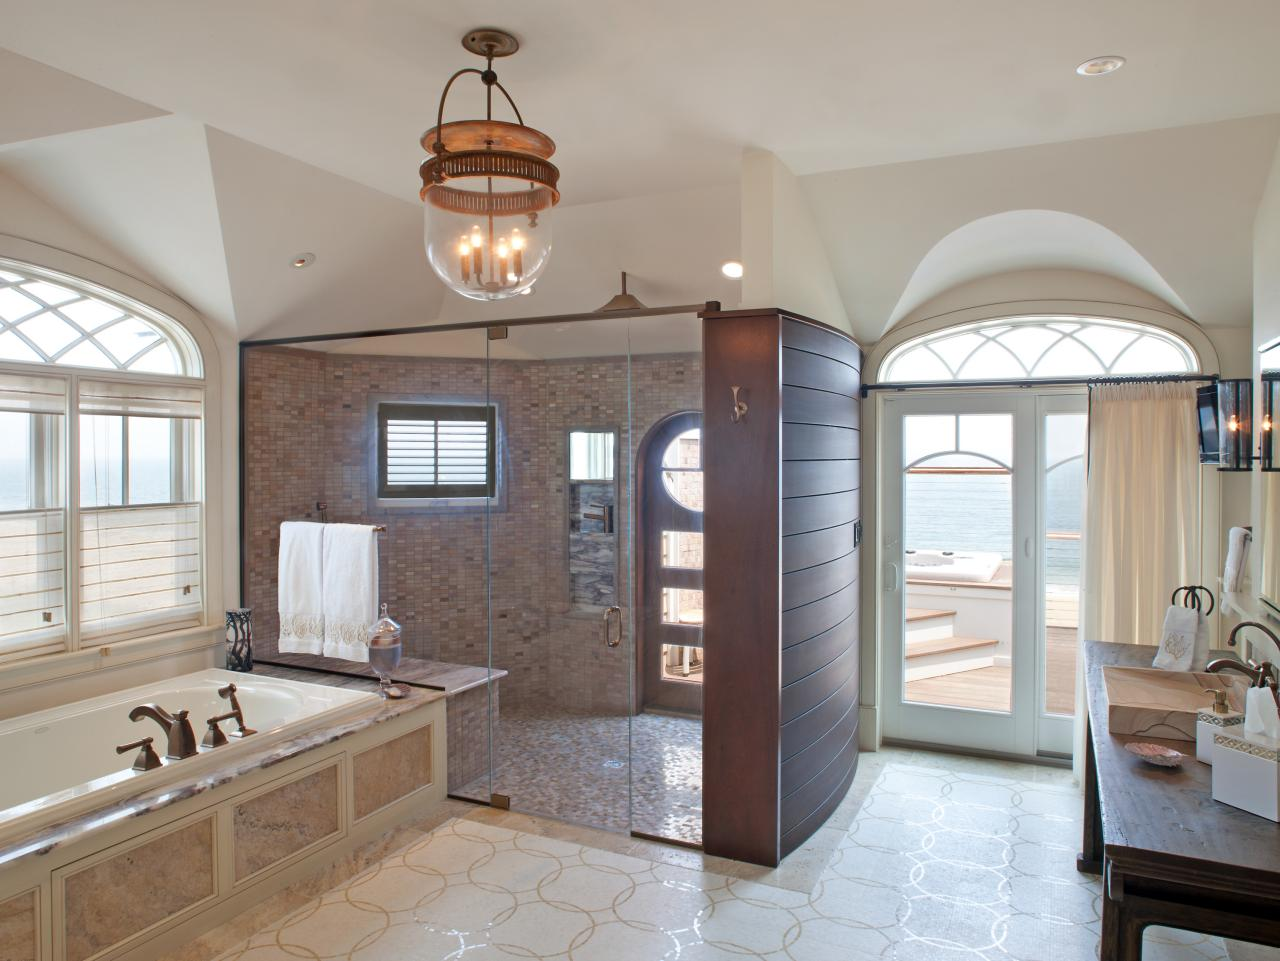 beach bathroom ideas. Charleston Inspiration Beach  Nautical Themed Bathrooms HGTV Pictures Ideas